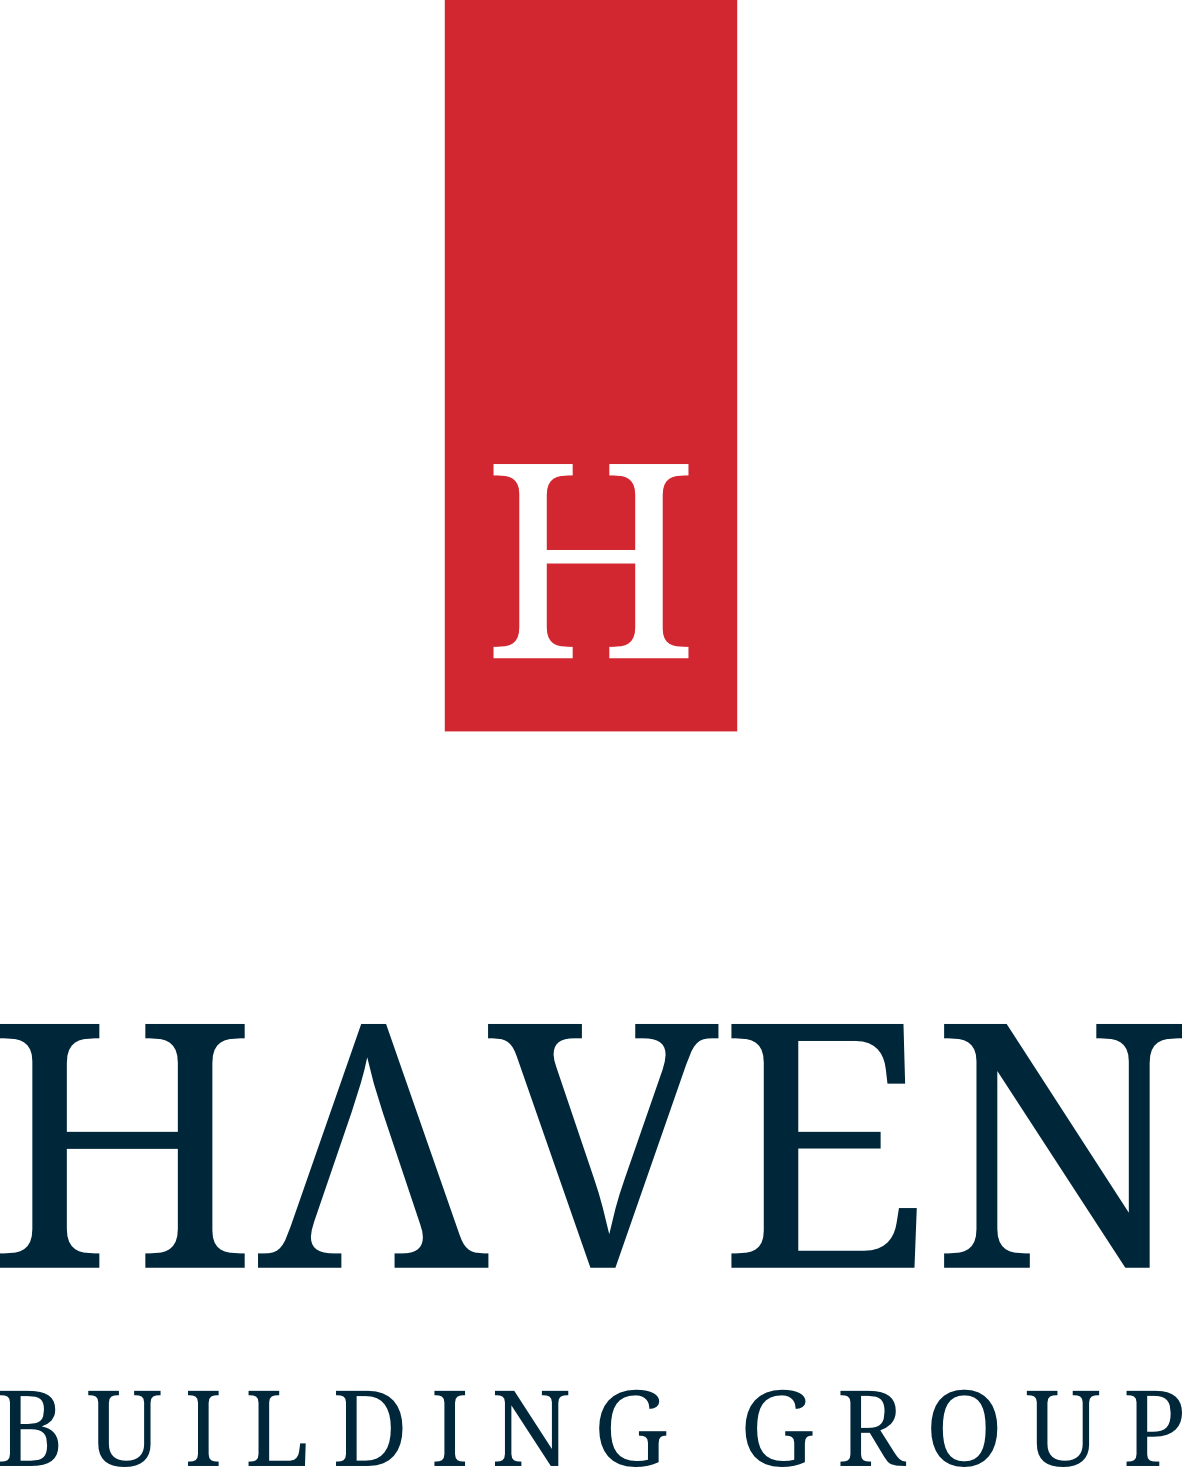 Haven Building Group